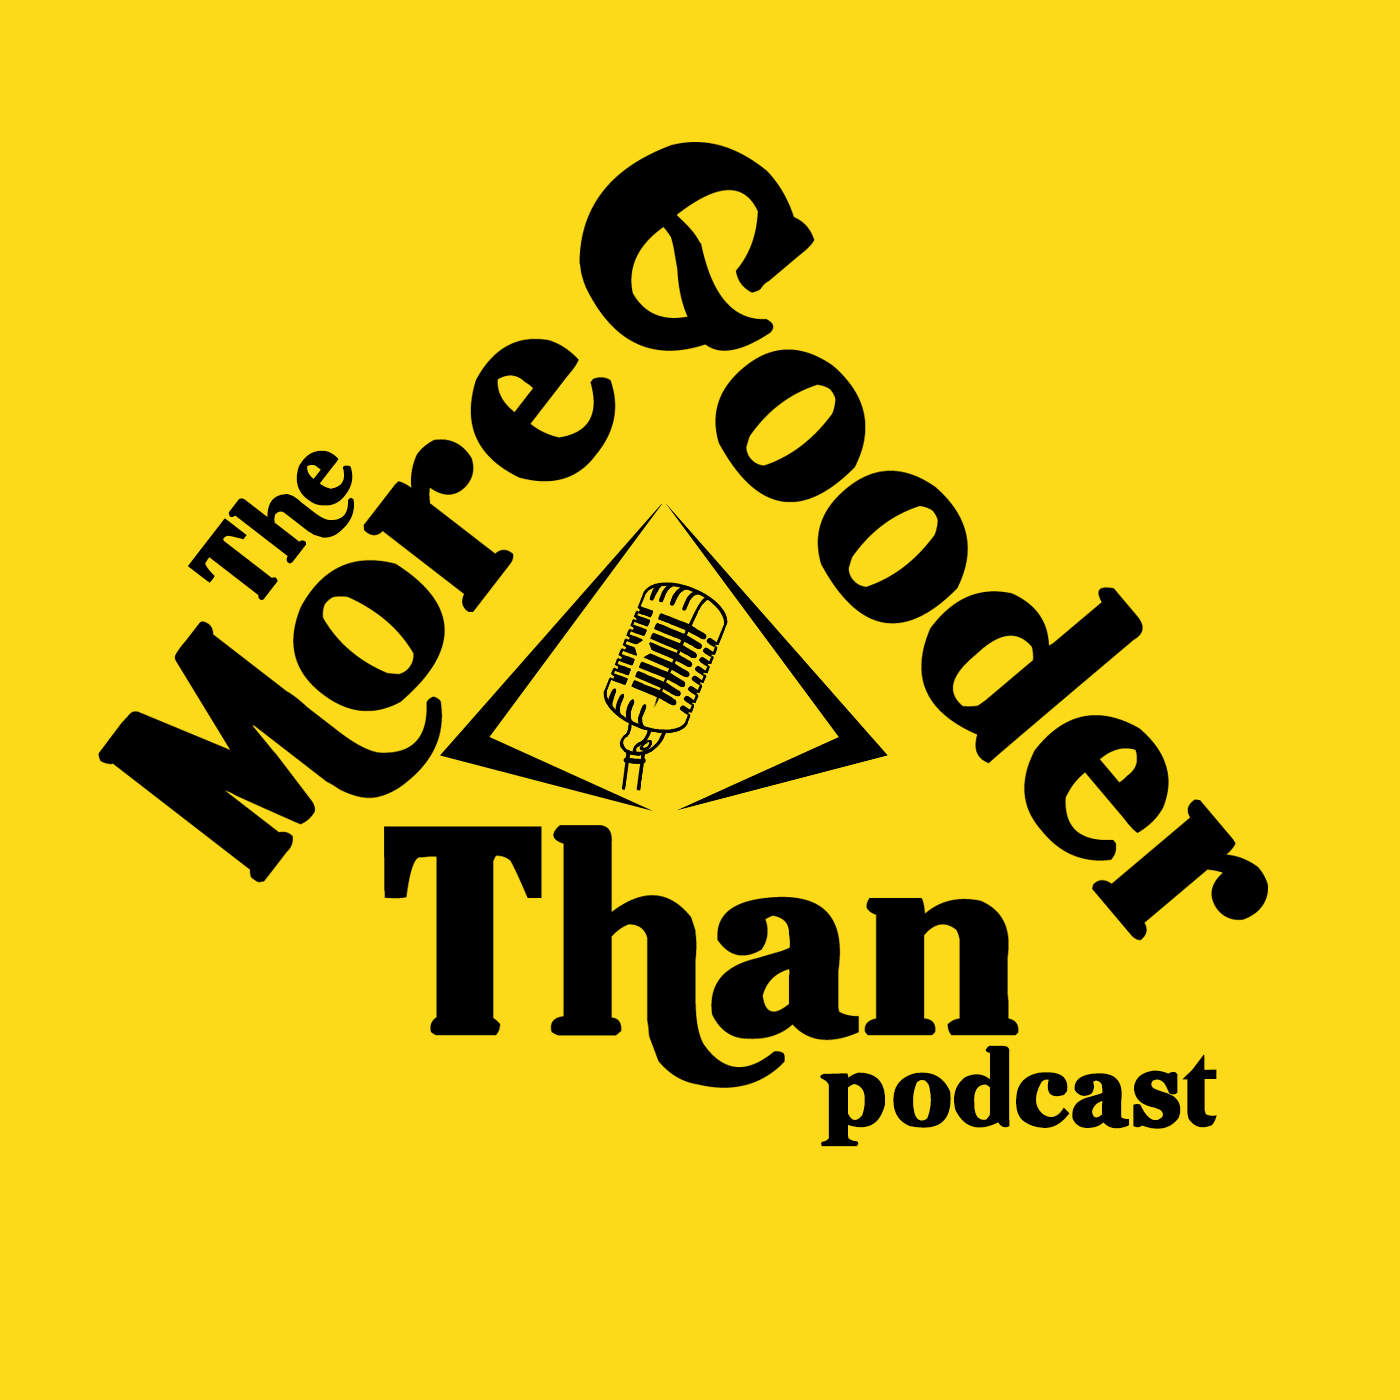 - More Gooder Than is a weekly podcast in which we rate and dissect pop culture, one argument at a time. Chris, Donnie, and Cory will each take a stance on a movie, actor, character, episode or whatever else we feel like defending and try to determine who's side is the Most Goodest. After the hilarity concludes, hopefully we'll have both entertained and educated you; at least, educated you on our opinions.